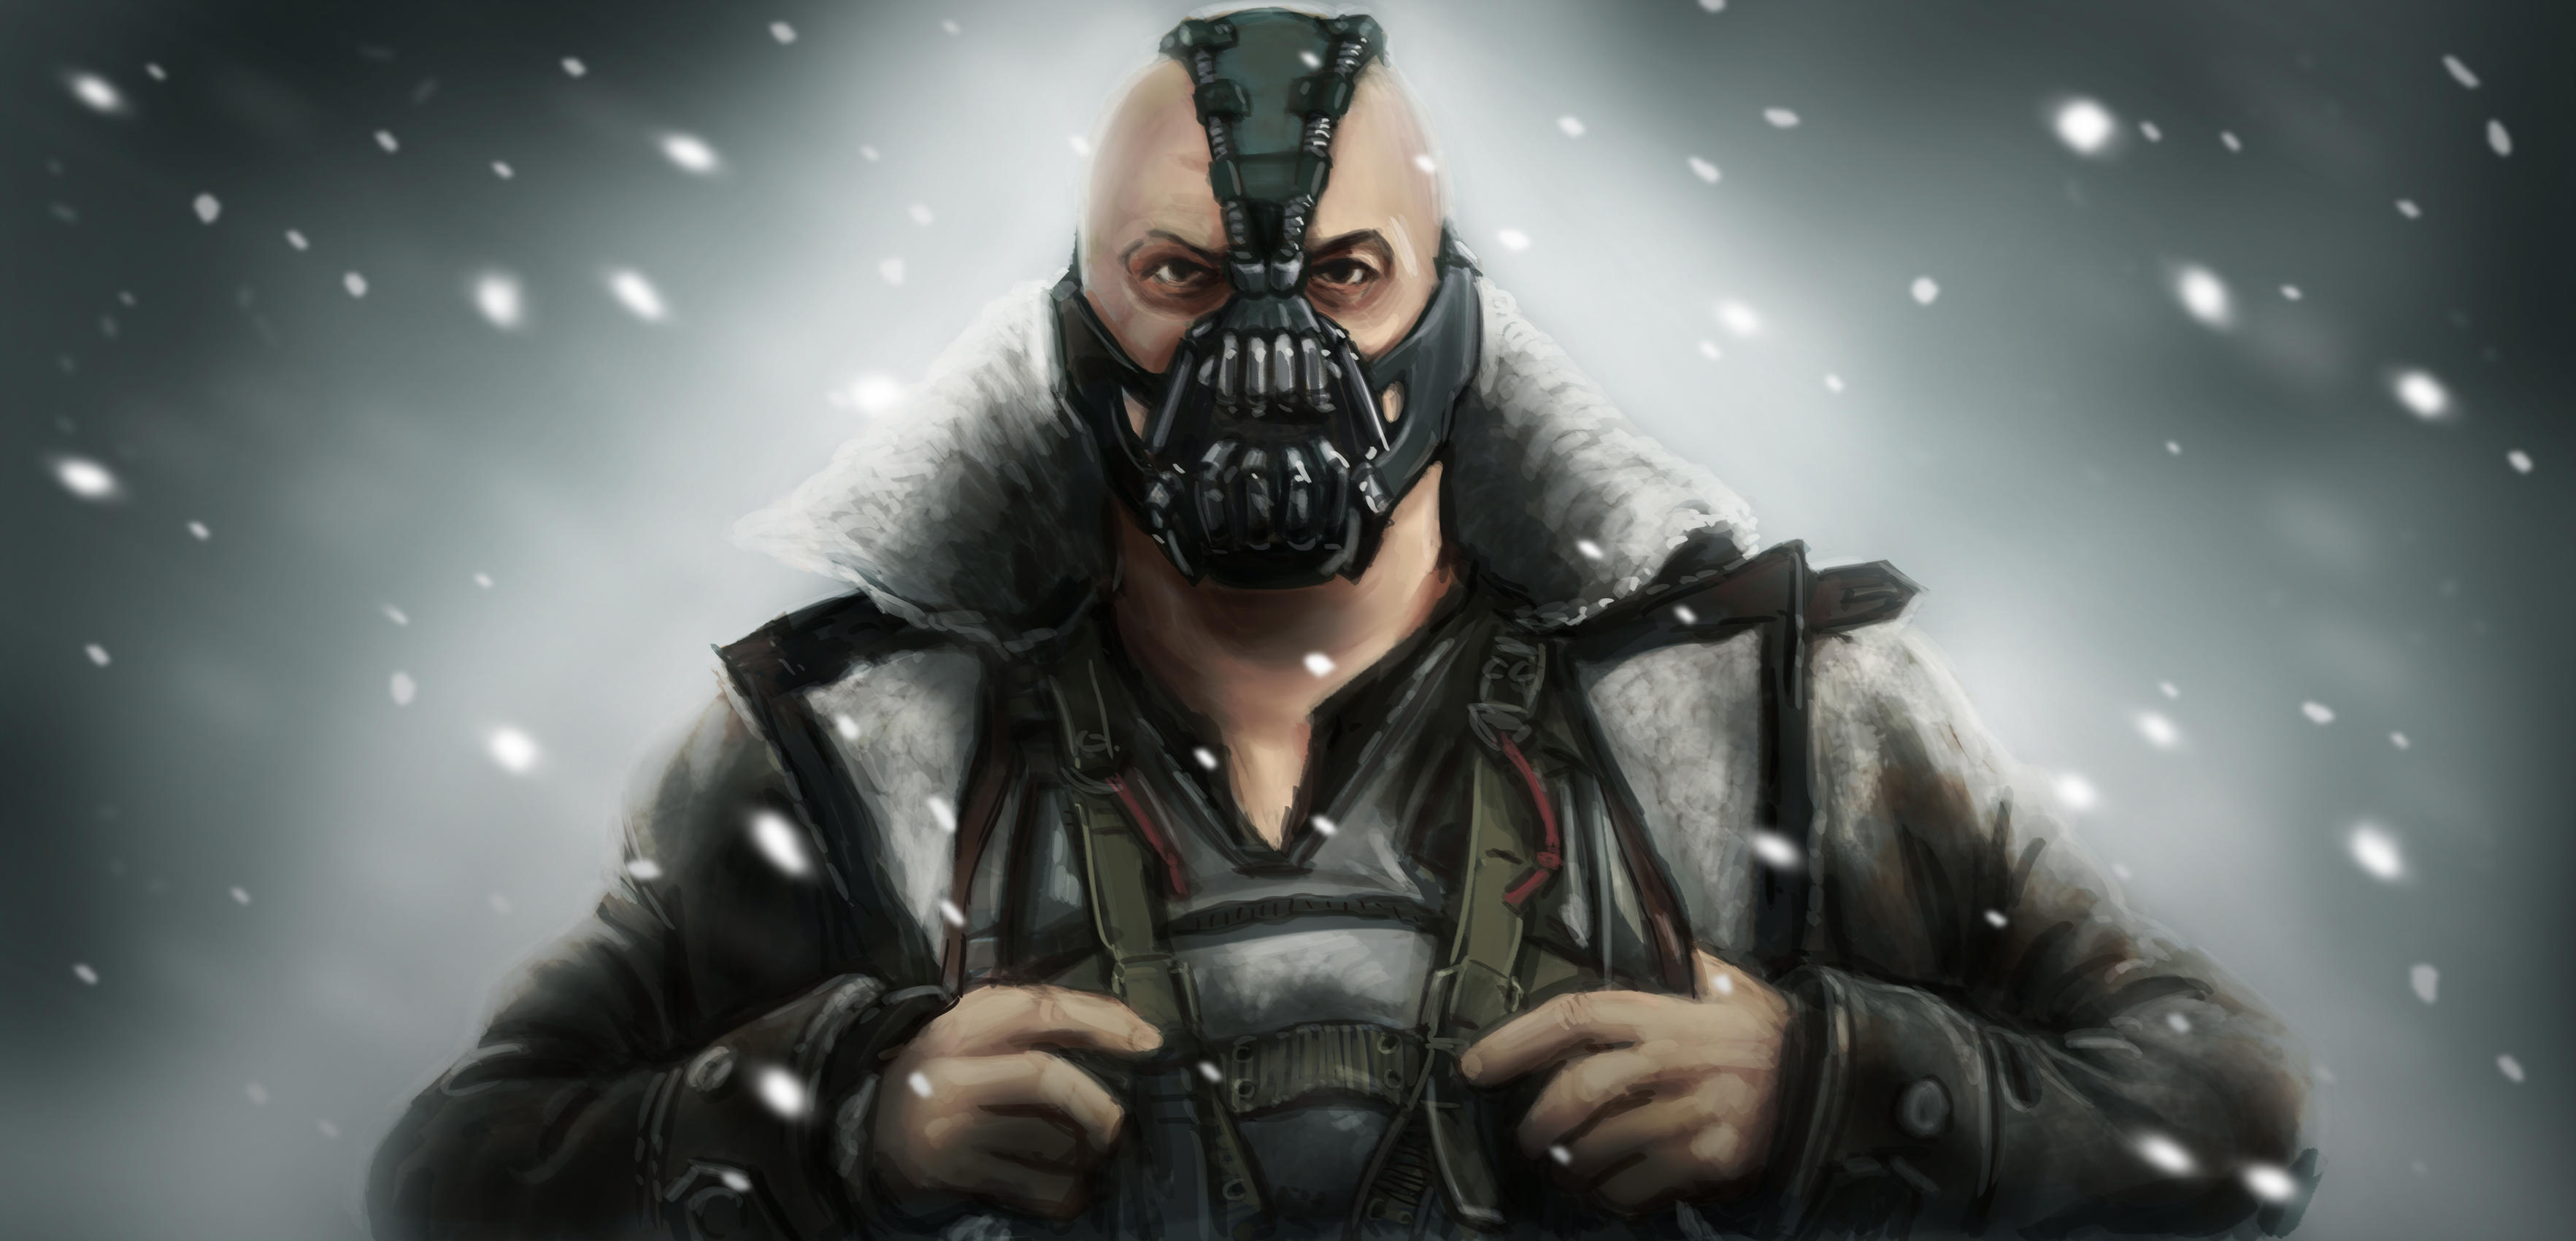 30+ Dark Knight Wallpaper Bane Pics